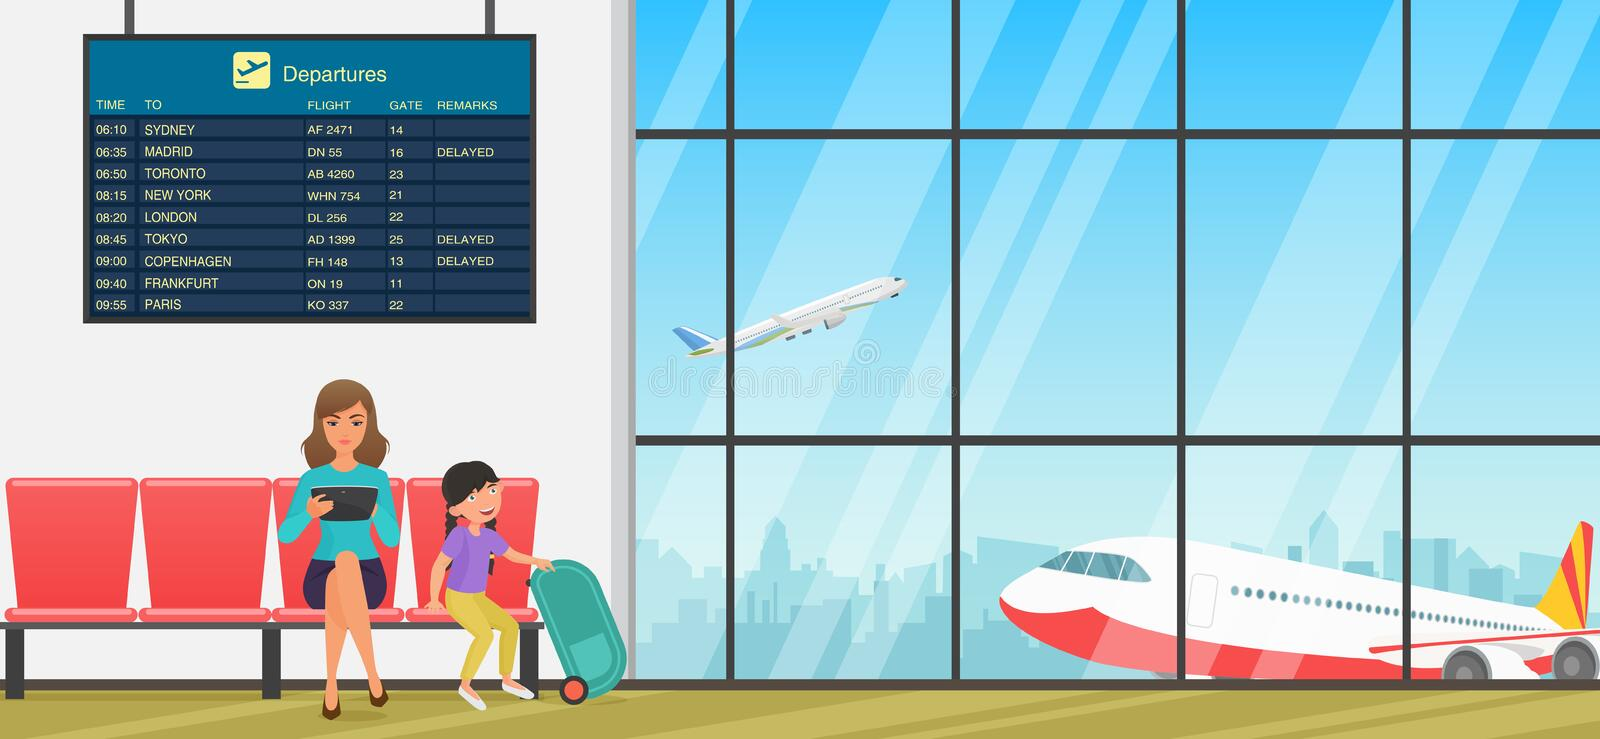 Airport waiting room. Departure lounge with chairs, information panels and people. Terminal hall with airplanes view. Airport waiting room or departure lounge vector illustration